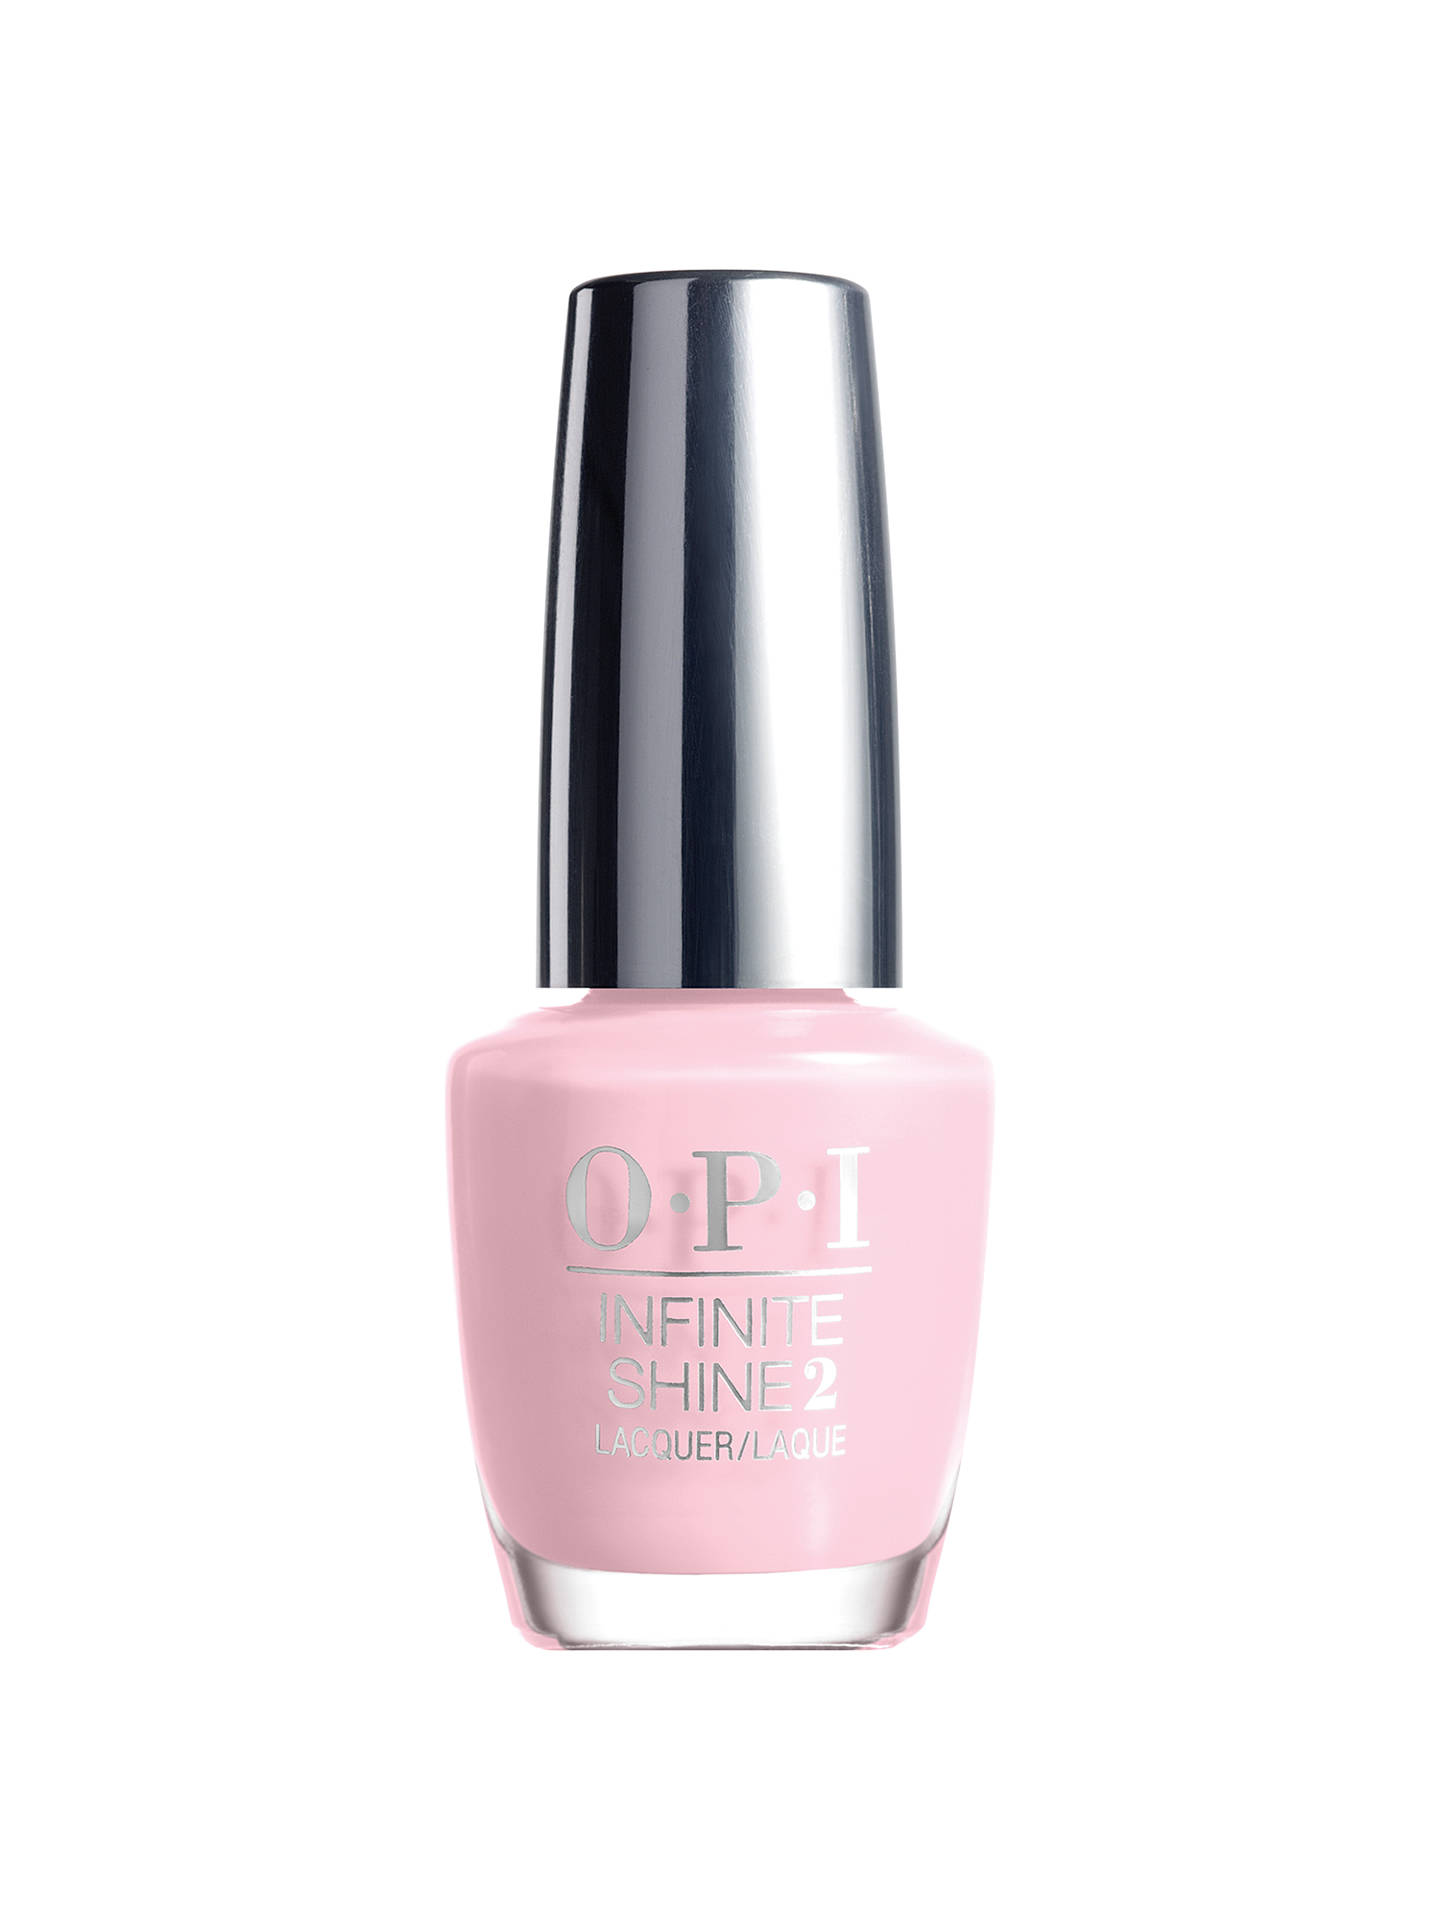 OPI Infinite Shine 2 Nail Lacquer, 15ml at John Lewis & Partners